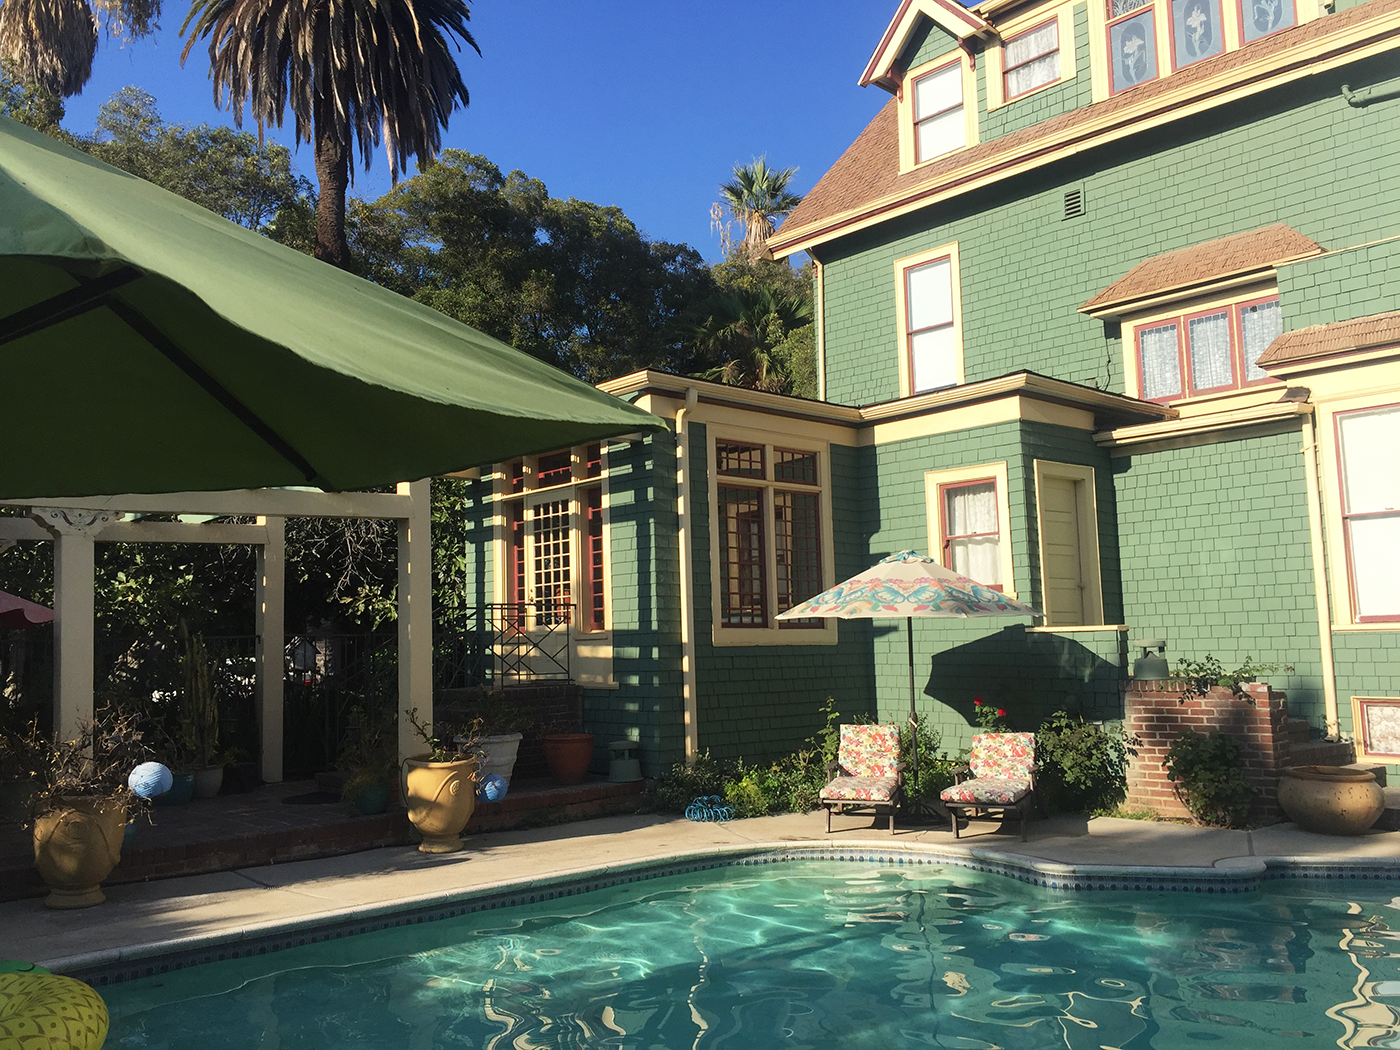 Rejseguide Los Angeles Bissell House Bed & Breakfast